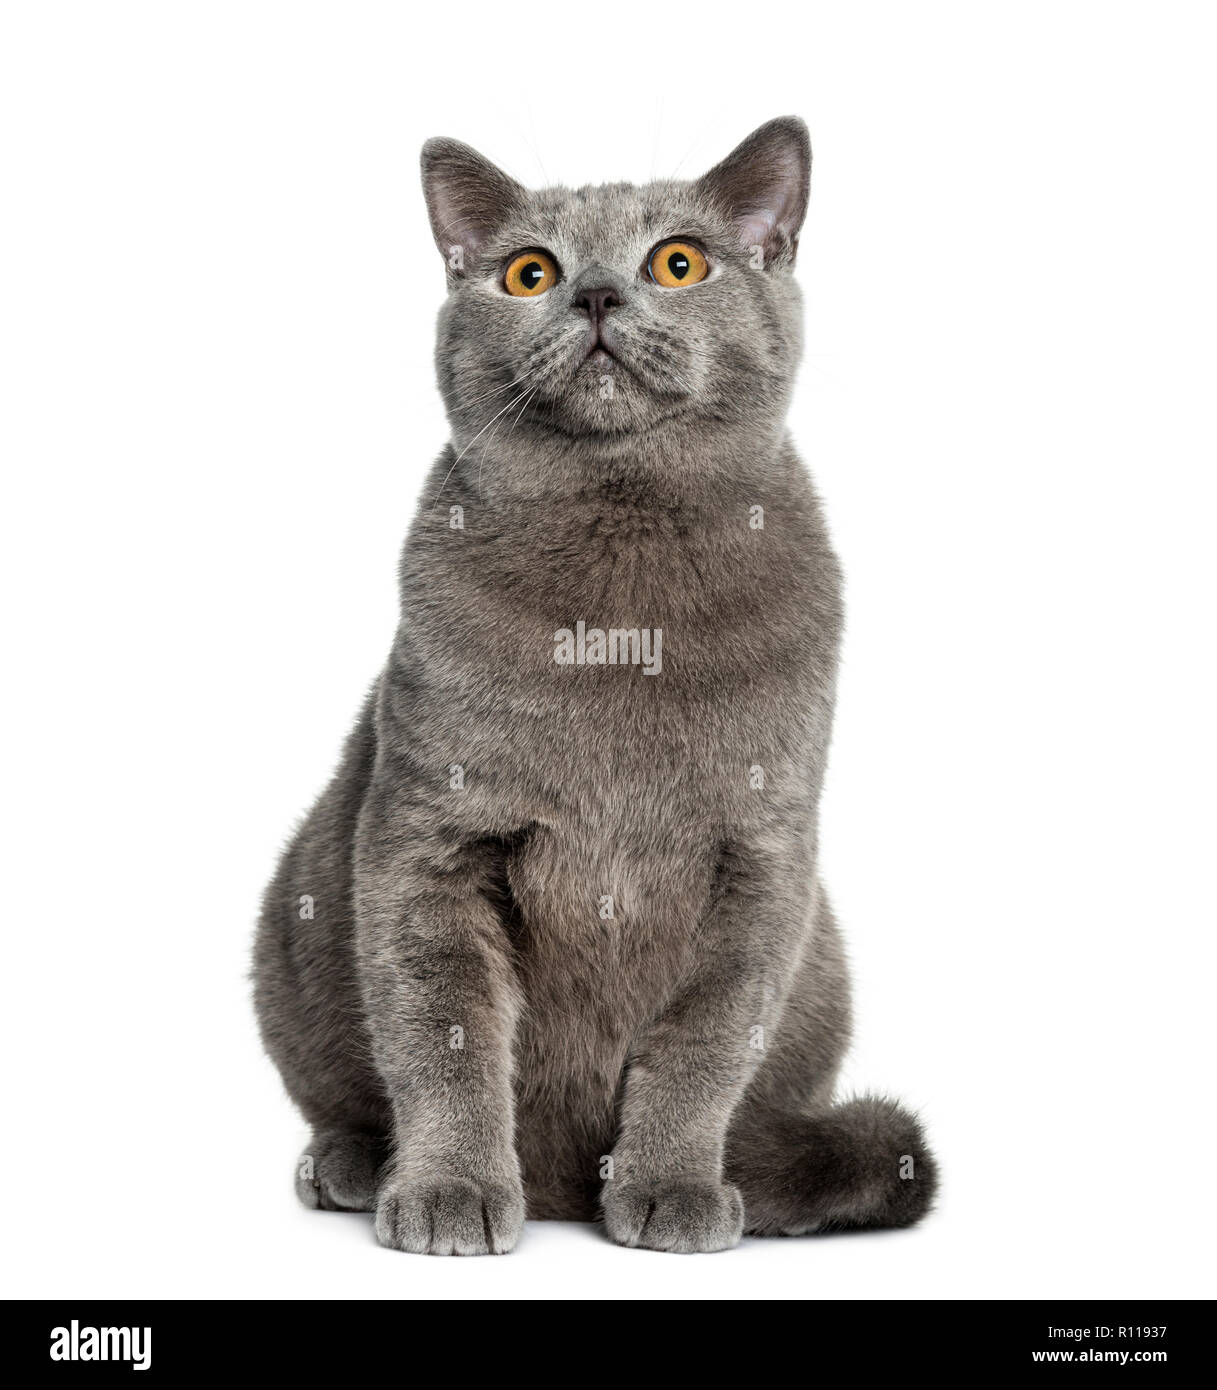 British Shorthair sitting (6 months old) - Stock Image